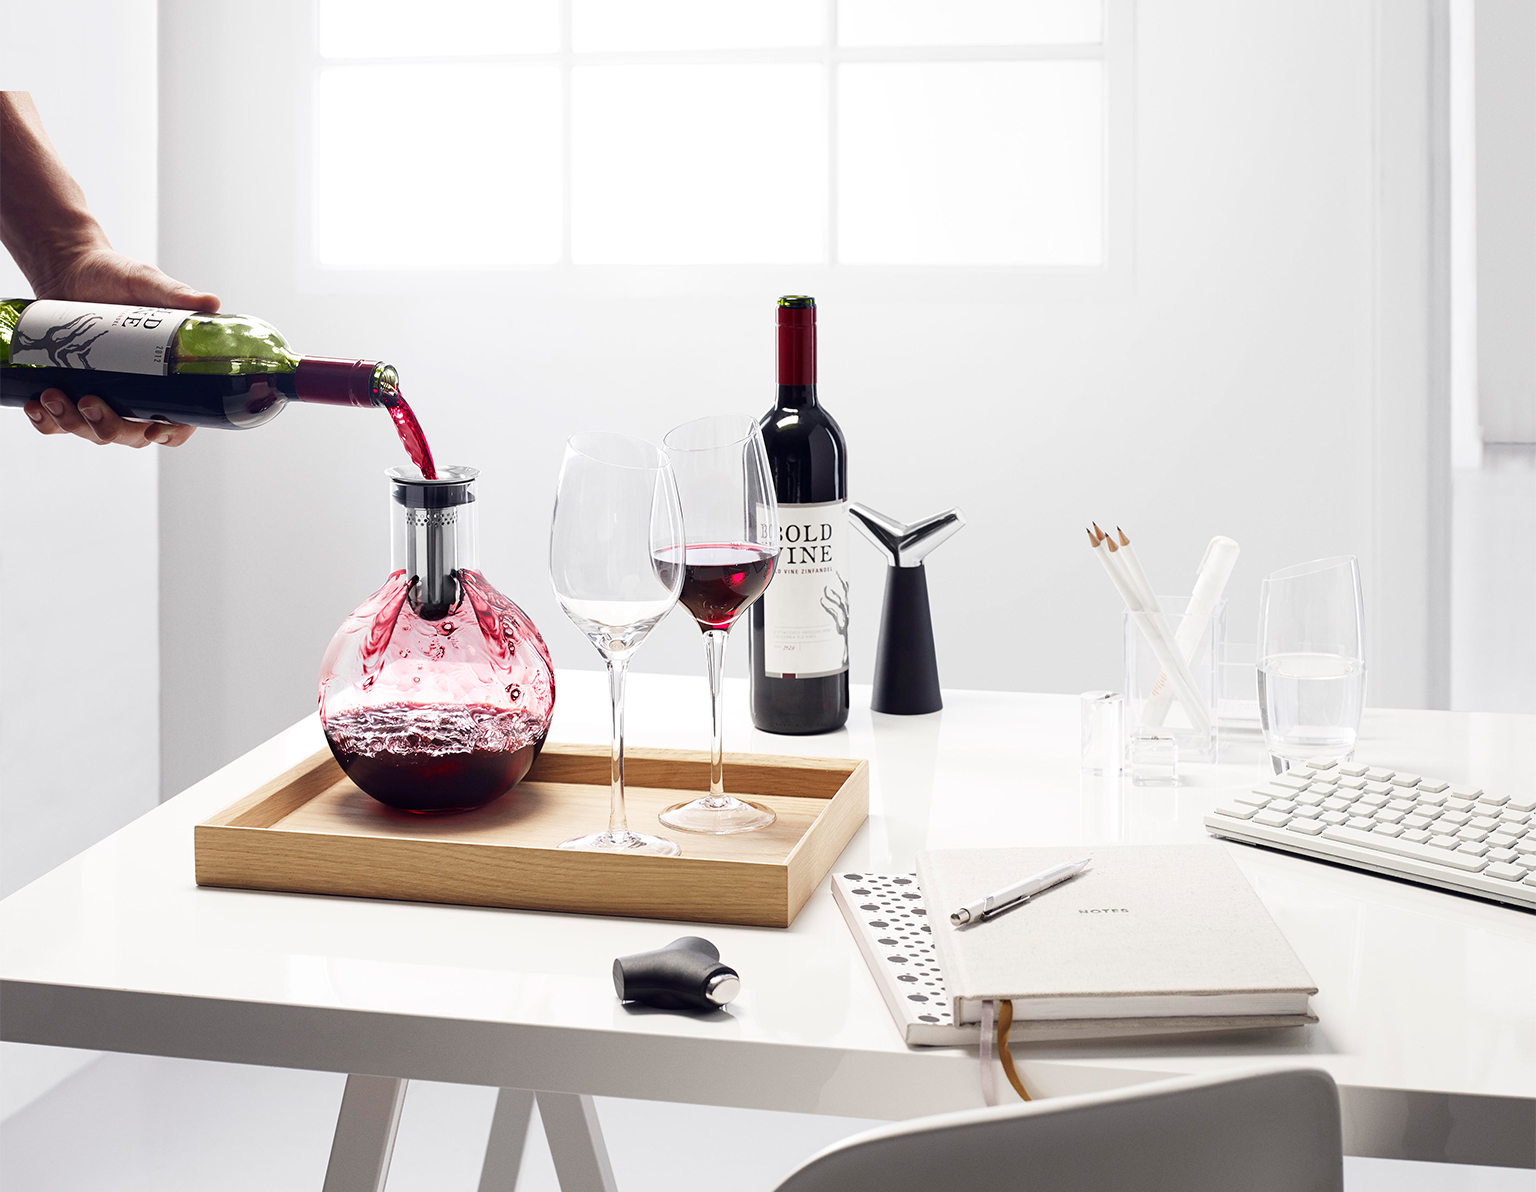 <p>Click here to find gifts where beautiful design meets the great wine experience.</p>